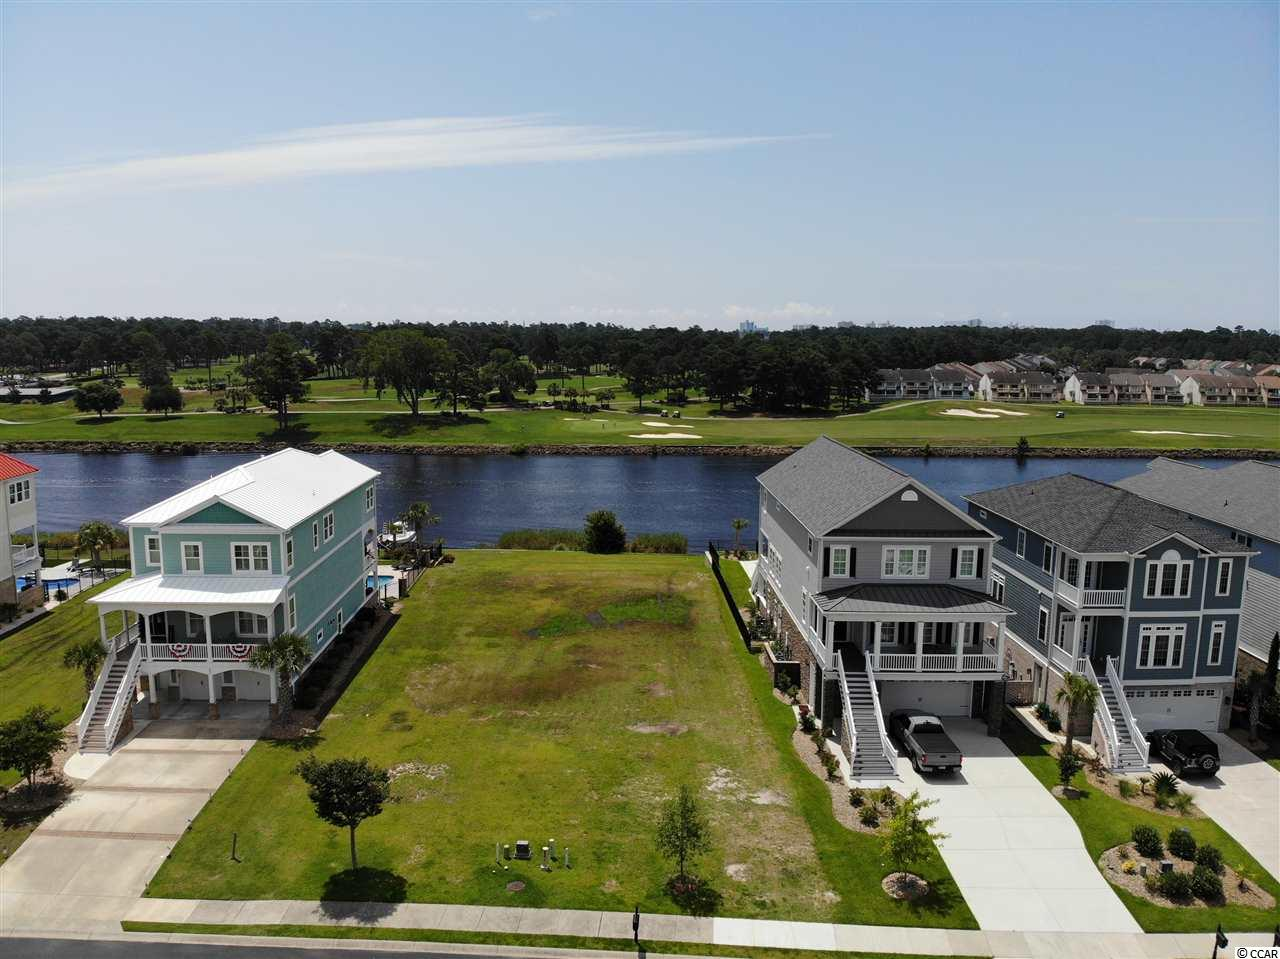 Awesome homesite on the Intracoastal Waterway.  This home site has no homes across the ICW and looks at the green of the Myrtle Wood Golf Course.  Buy now build later, no building timeframe. Waterway Palms Plantation is a gated planned residential community located on the Intercostal Waterway (ICW). Situated in Carolina Forest Waterway Palms is perfectly located near shopping, grocery stores, and other daily goods and service vendors. Only a short 6-mile drive to the wide, friendly beaches, and the Atlantic Ocean Waterway Palms offers the best of both land and sea.